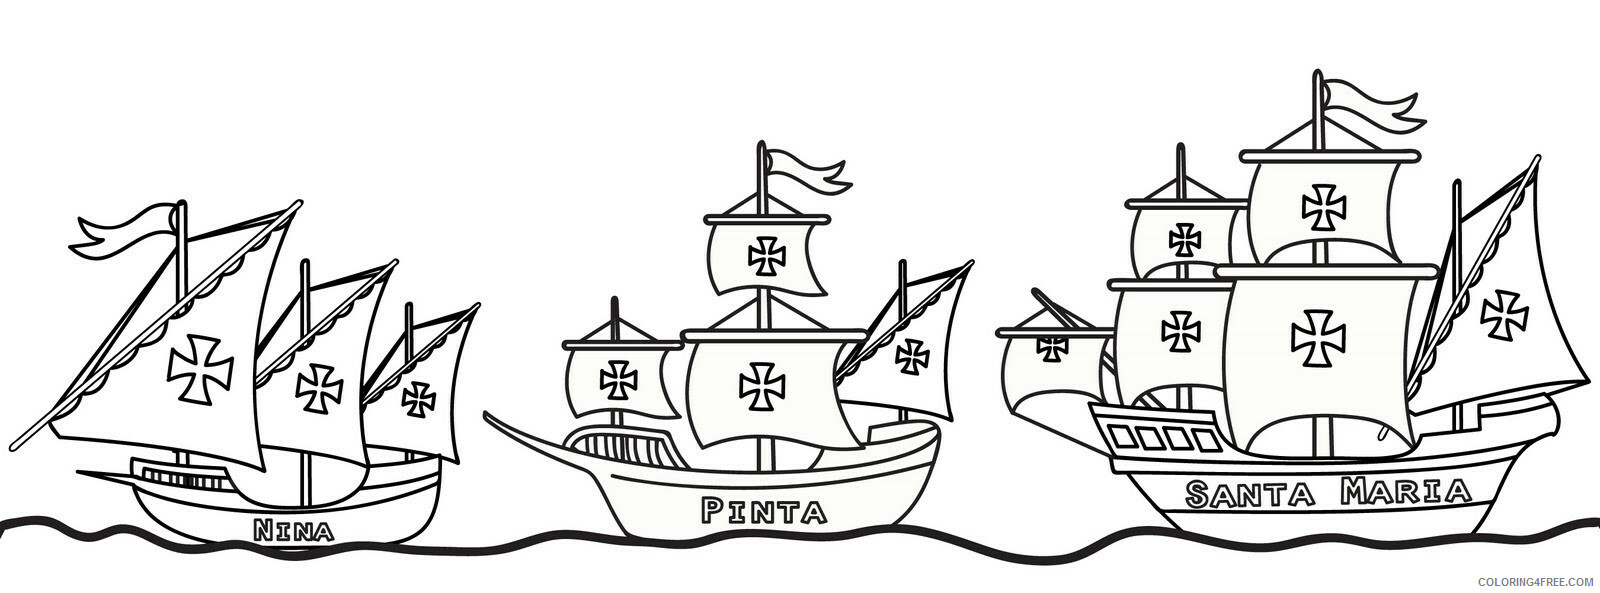 Columbus Day Coloring Pages Holiday Columbus Day 1 2 Printable 2021 0143 Coloring4free